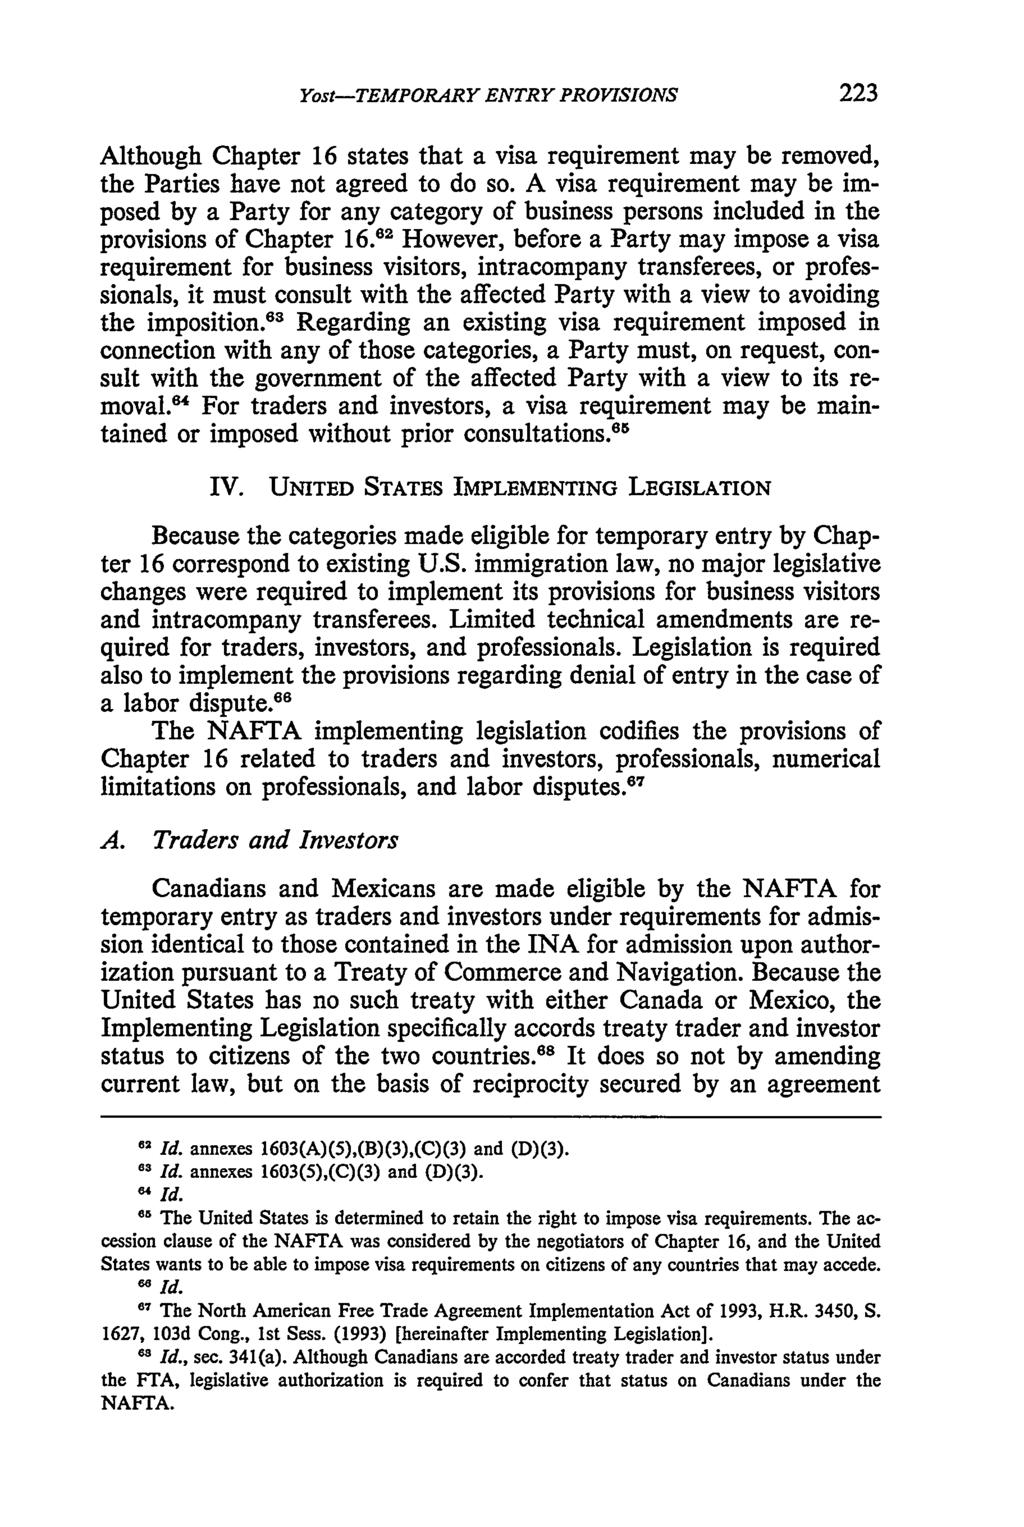 Yost: NAFTA--Temporary Entry Provisions--Immigration Dimensions Yost-TEMPORARY ENTRY PROVISIONS Although Chapter 16 states that a visa requirement may be removed, the Parties have not agreed to do so.